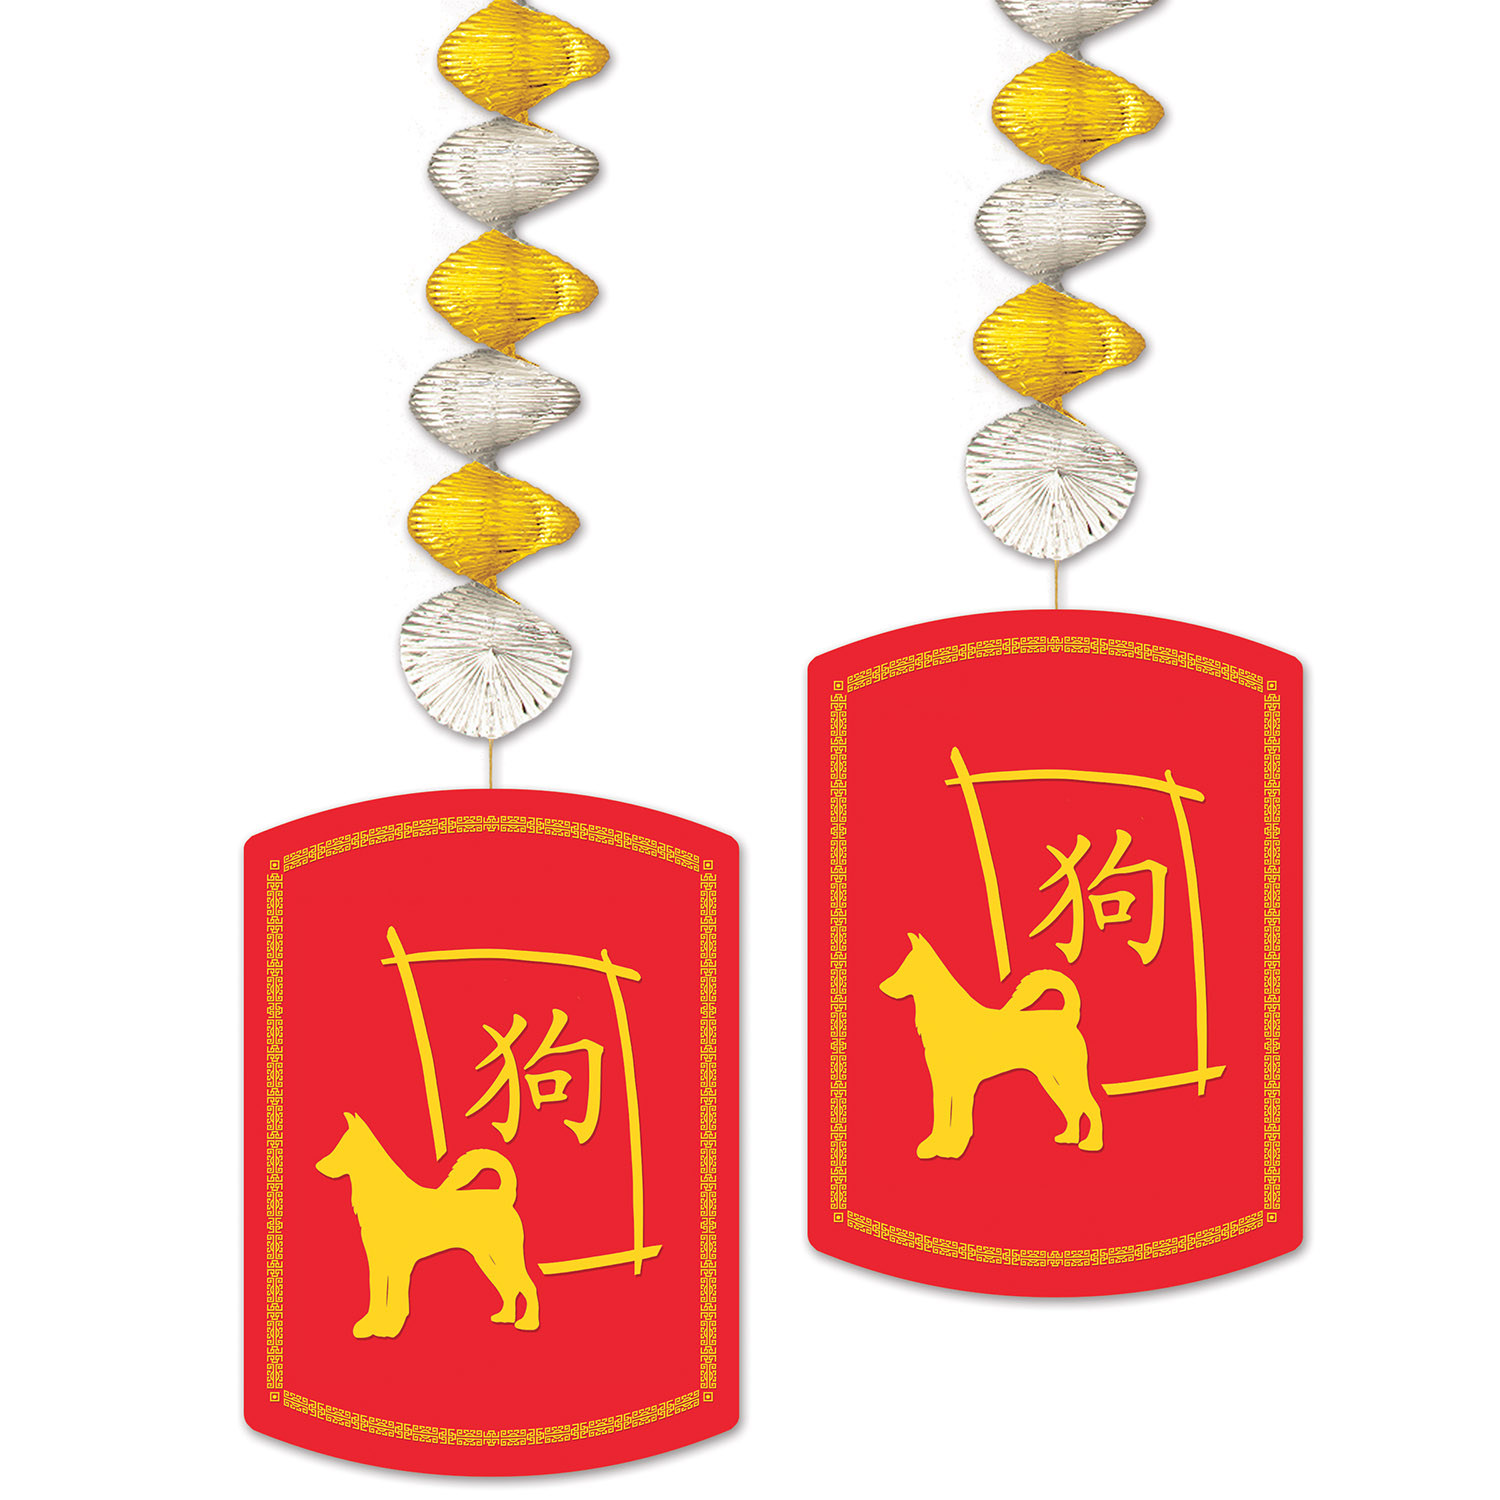 2018 Year of the Dog Danglers (Pack of 24) 2018, Year of the Dog, Hanging Decorations, Inexpensive Danglers, Inexpensive Decor, Chinese New Year, Shiny Gold Silver, Asian Decor, International holidays